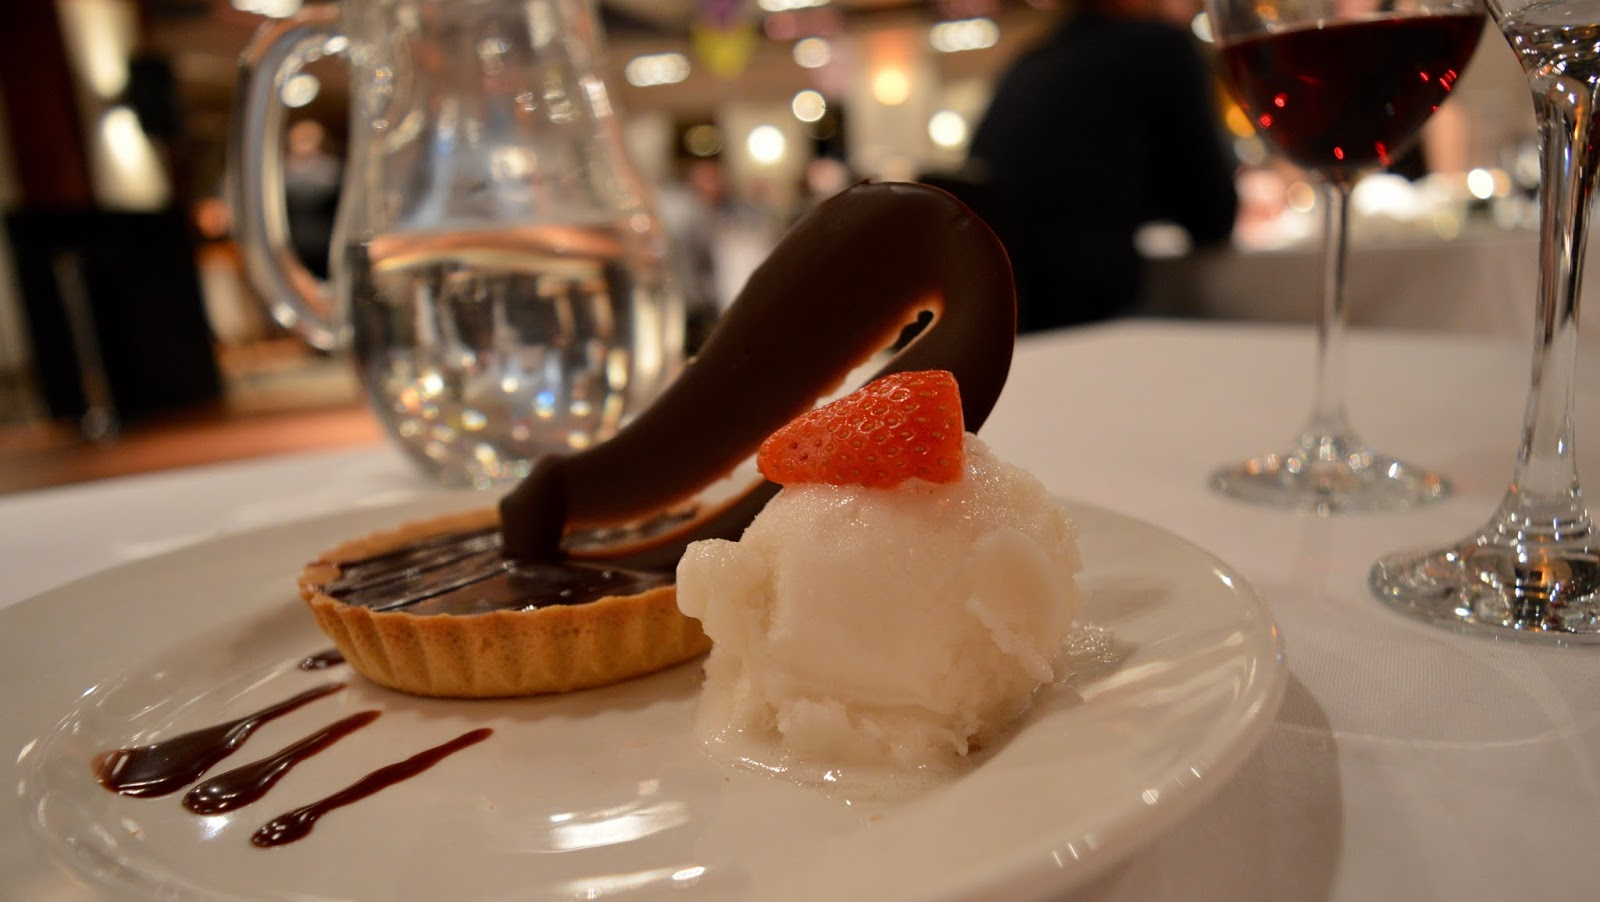 A grown-up date night at Doubletree by Hilton Newcastle Airport with a night of swing and sax with Jason Isaacs in the function room.  - chocolate tart